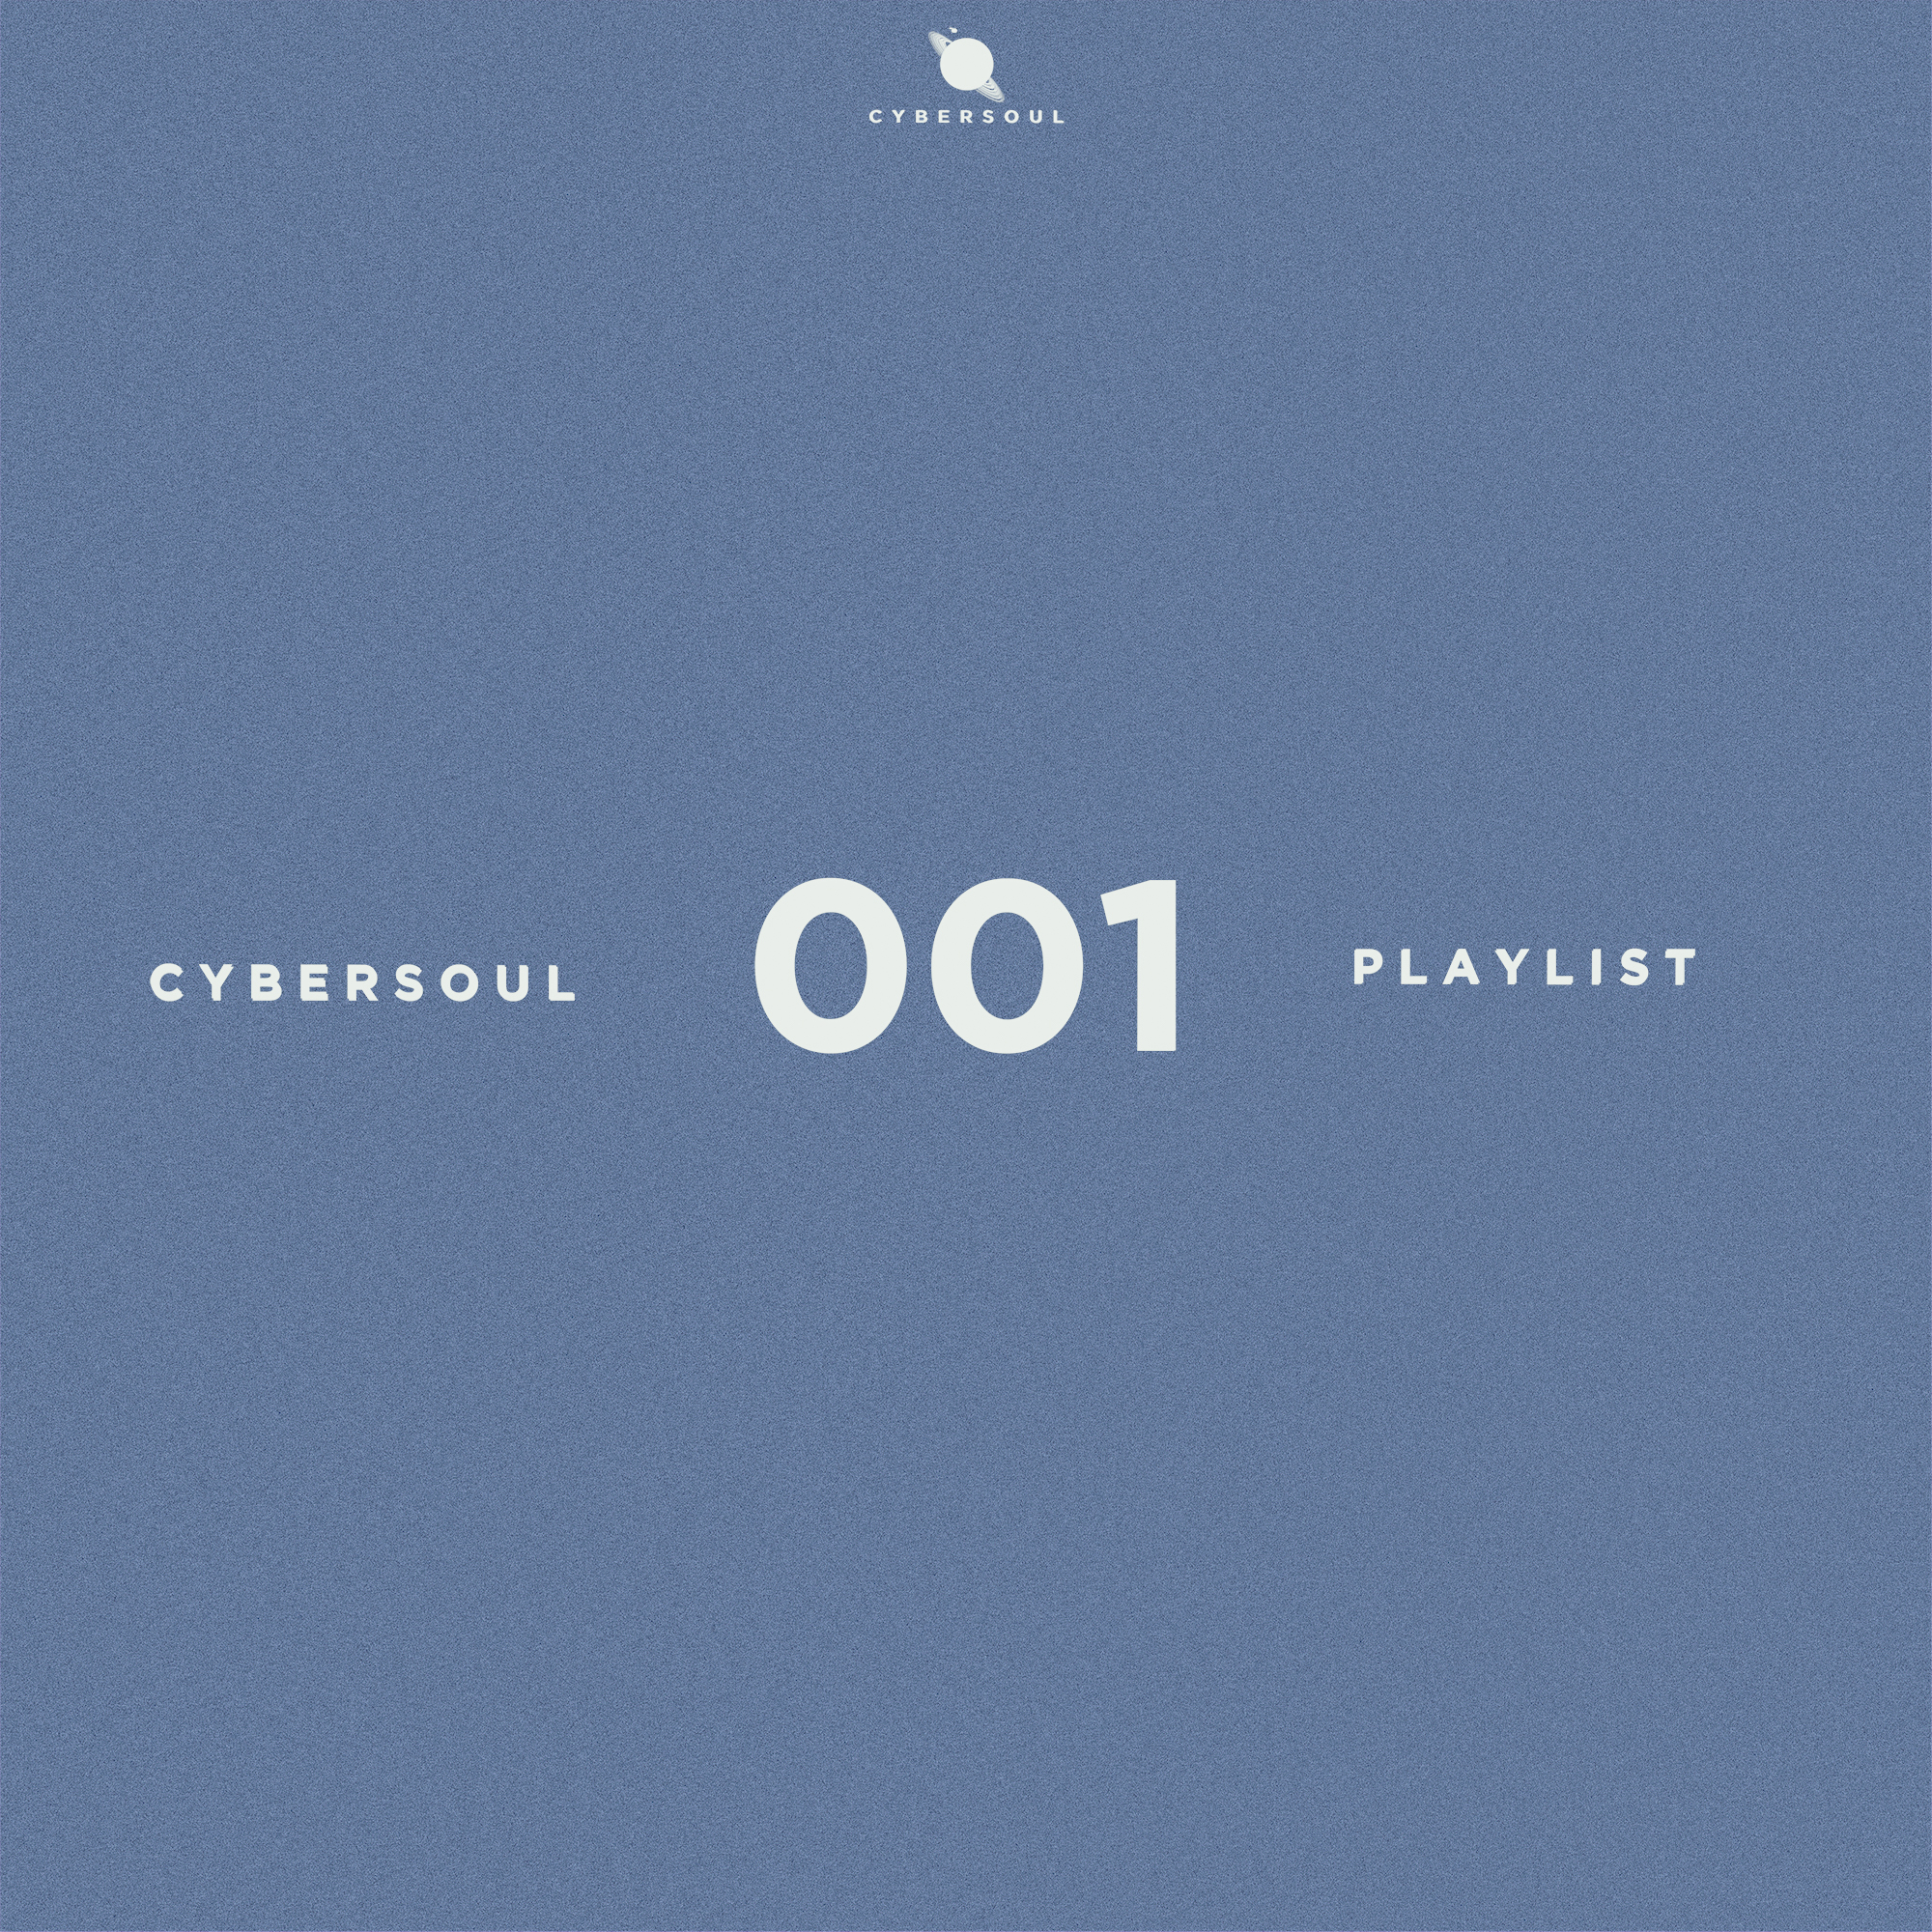 CYBERSOUL PLAYLIST 001